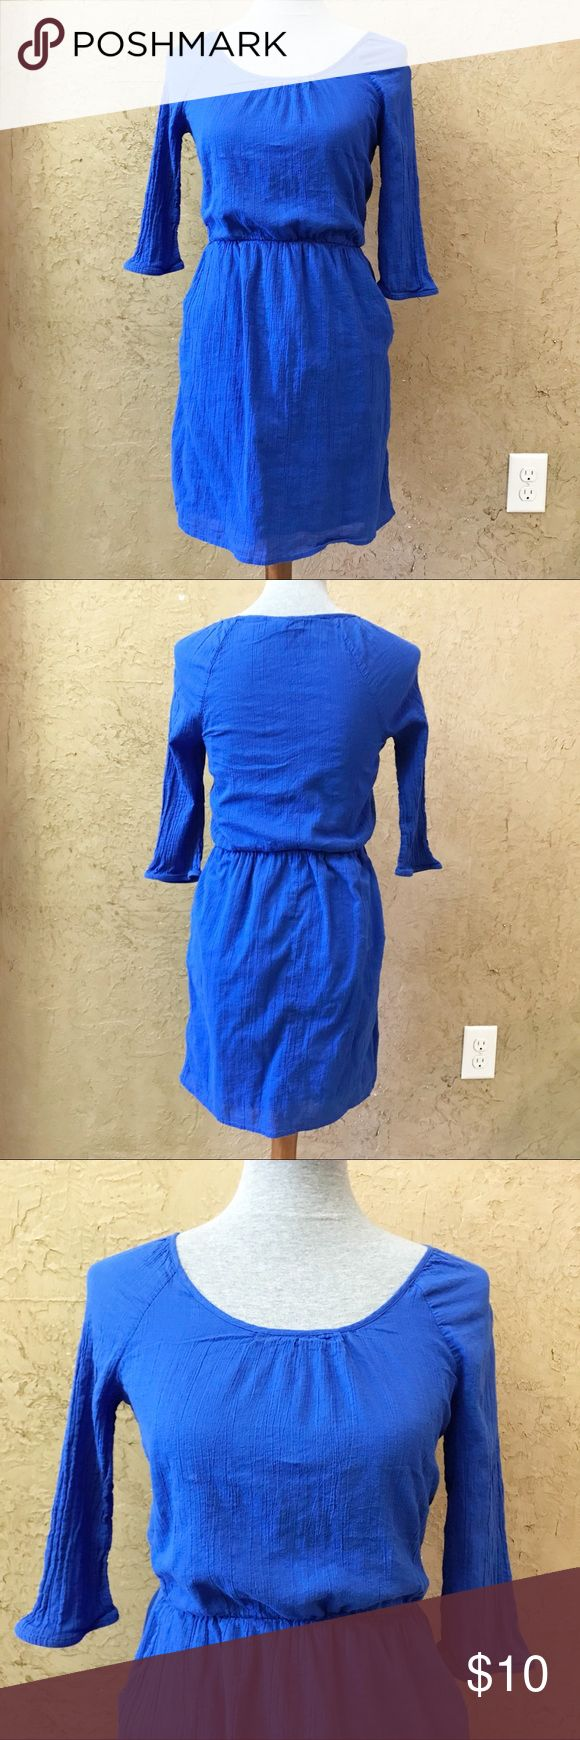 ❤️ Old Navy Mini Dress Used. Good condition. No stains, rips or holes. Side pockets.  *** Items marked with ❤️ --- are 5 for $20! Make an offer for $20 and I will accept.  📍SHIPS Monday to Friday 📍Pet-Free Home 📍Smoke-Free Home Old Navy Dresses Mini